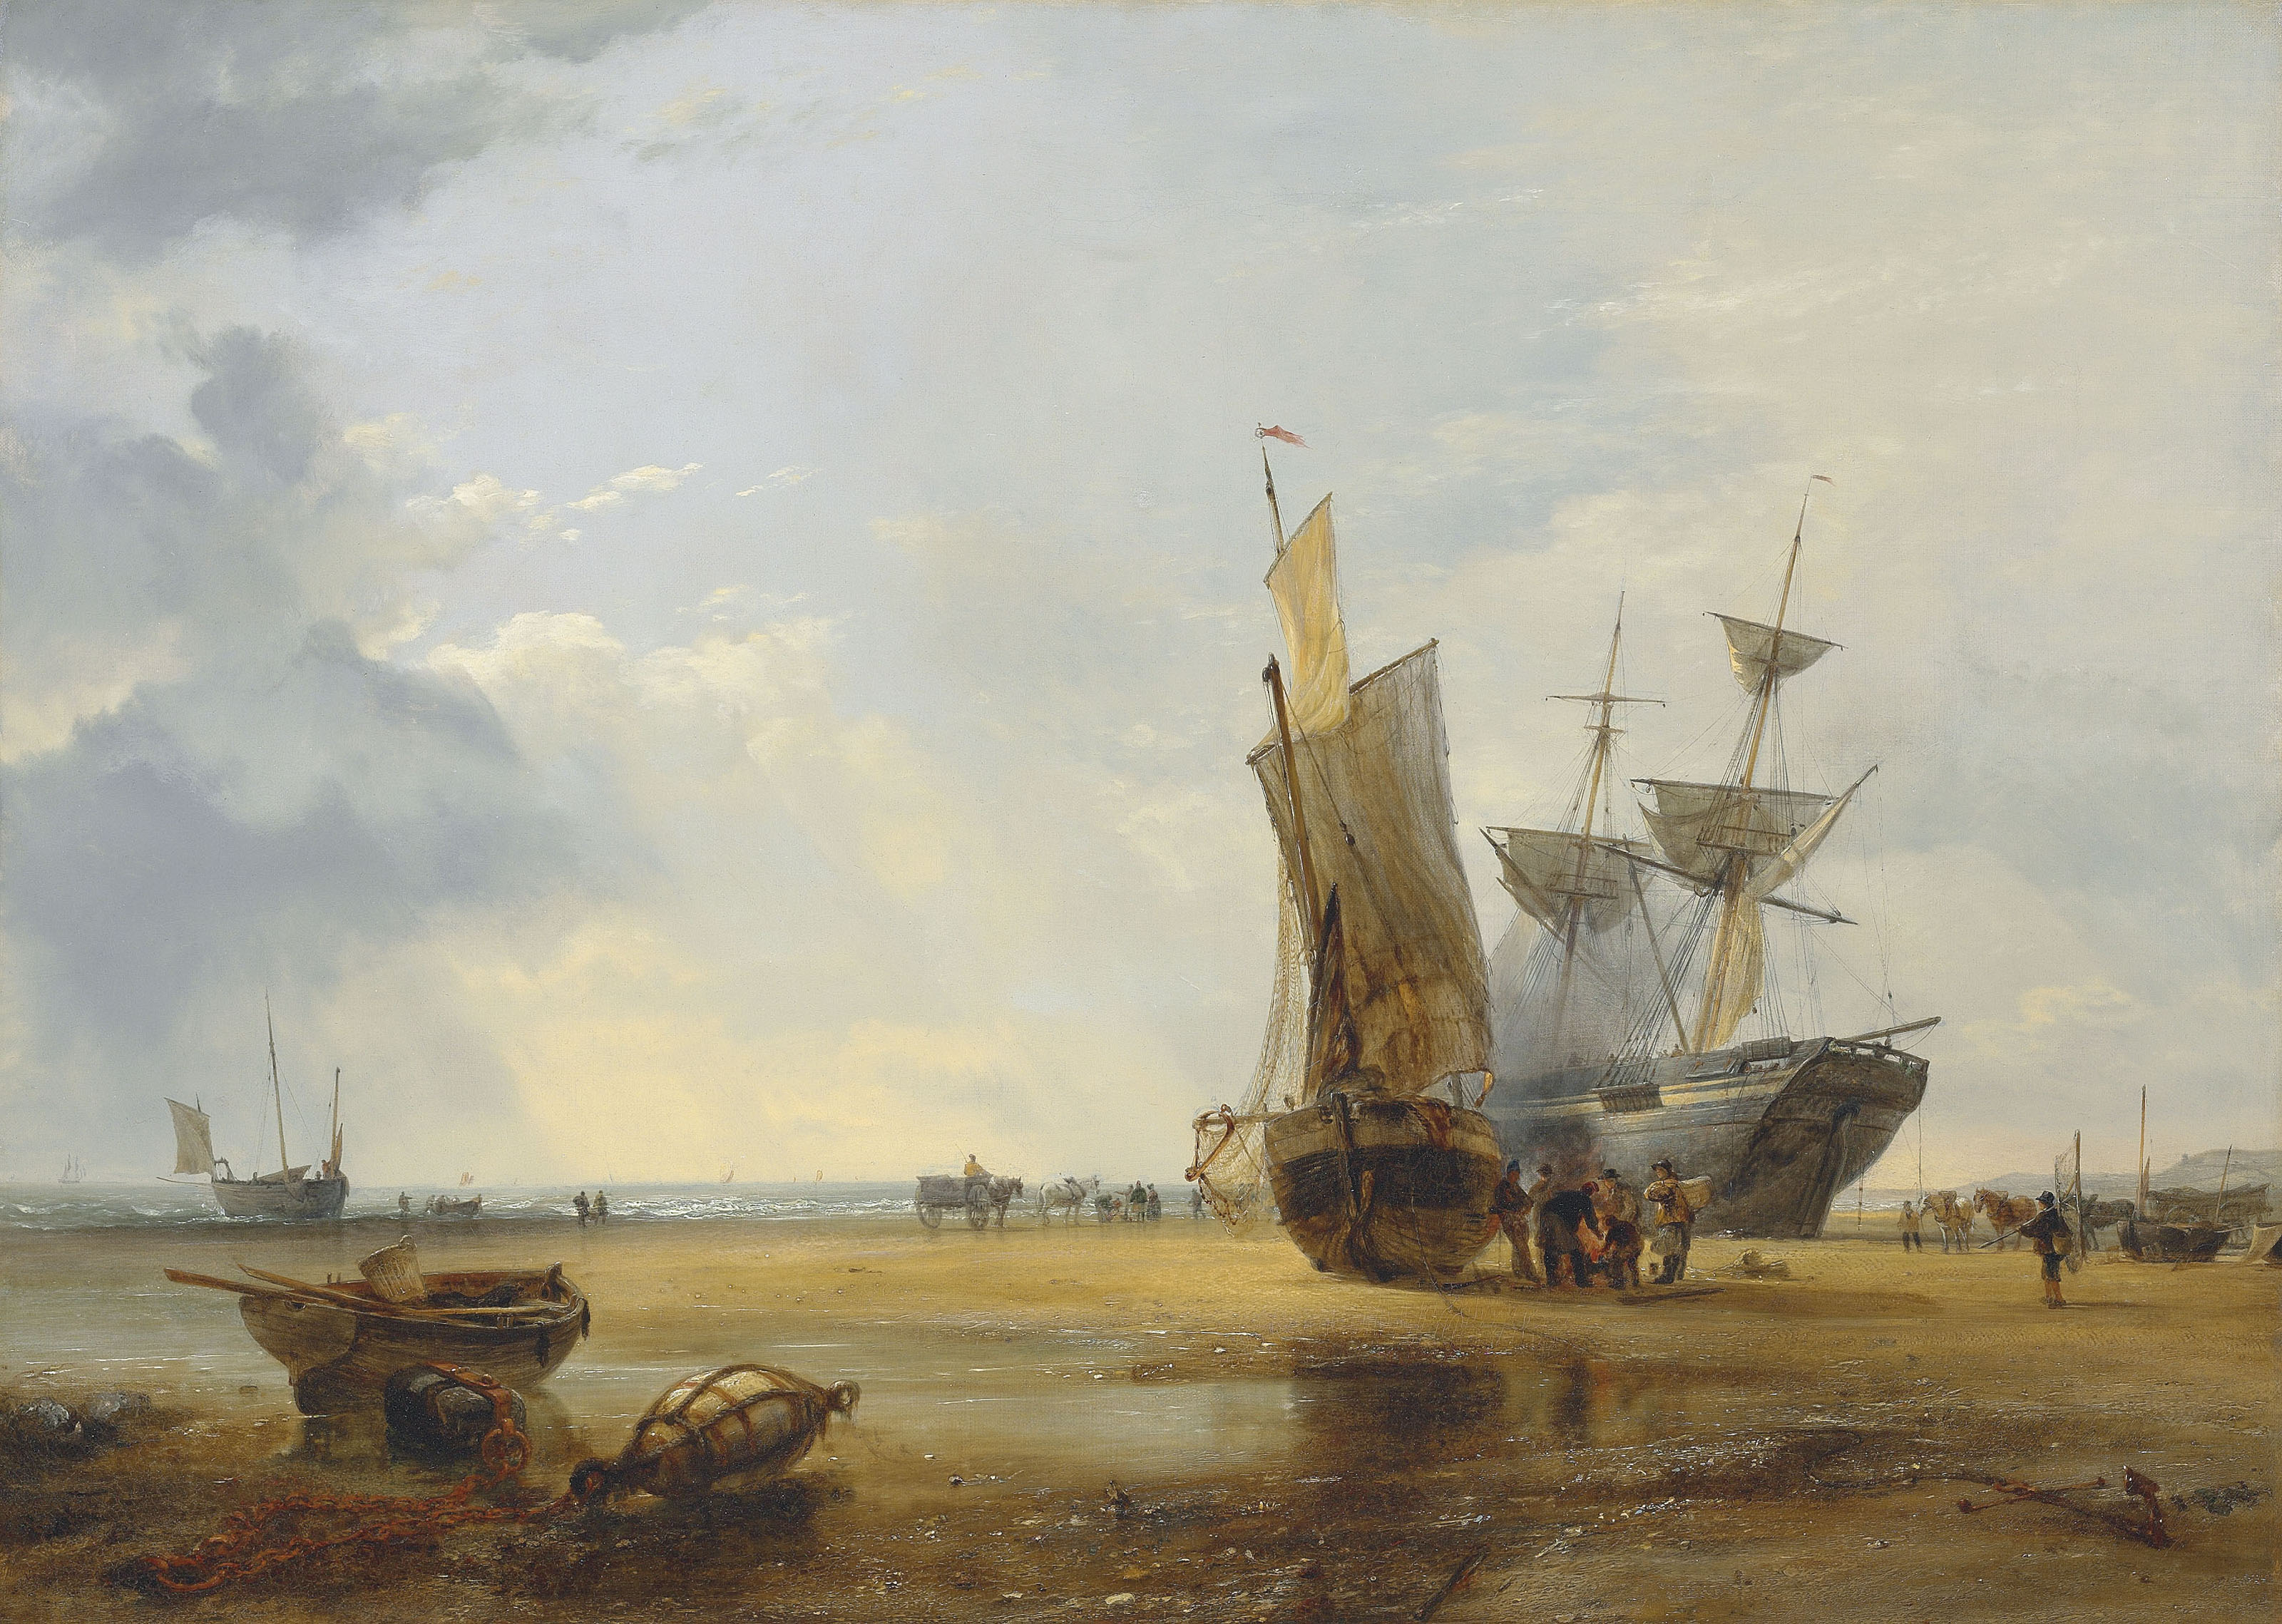 Brig on Sands: Vessels on the Sands at Hastings